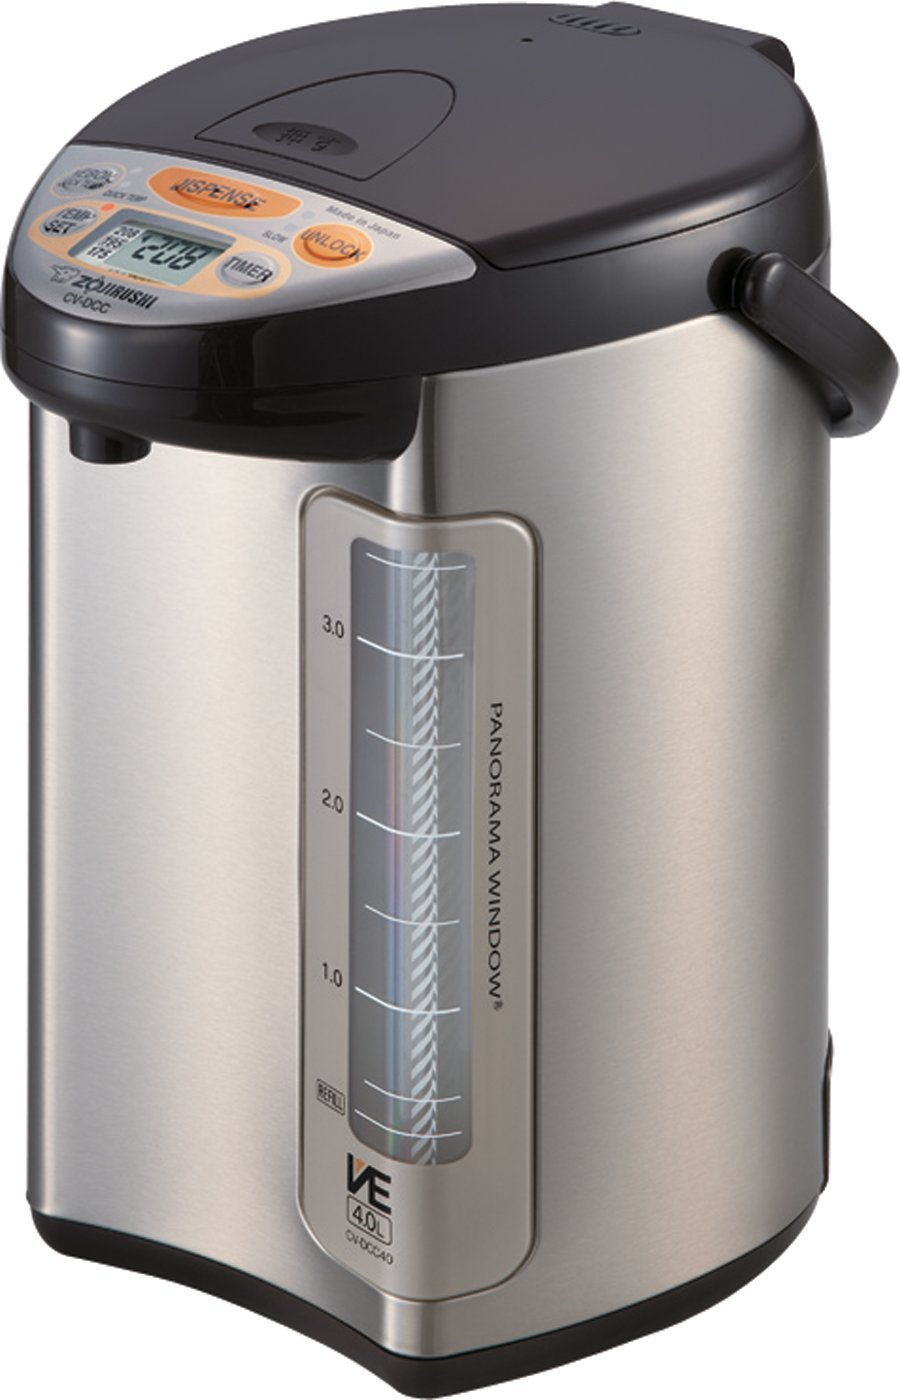 5 Best Hot Water Dispensers for your Kitchen